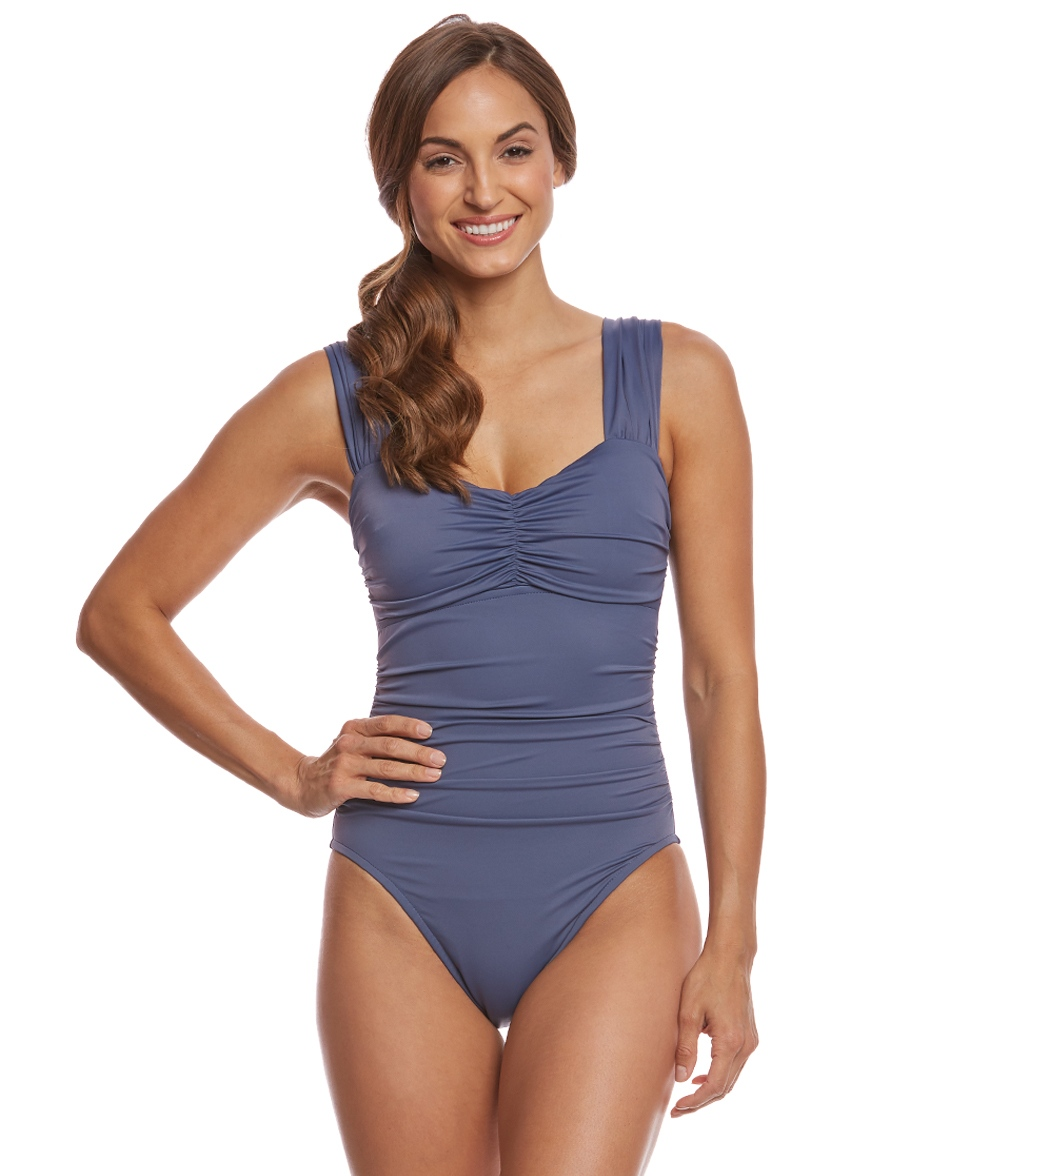 d8248df3ce1c8 Magicsuit by Miraclesuit Solid Natalie One Piece Swimsuit at SwimOutlet.com  - Free Shipping